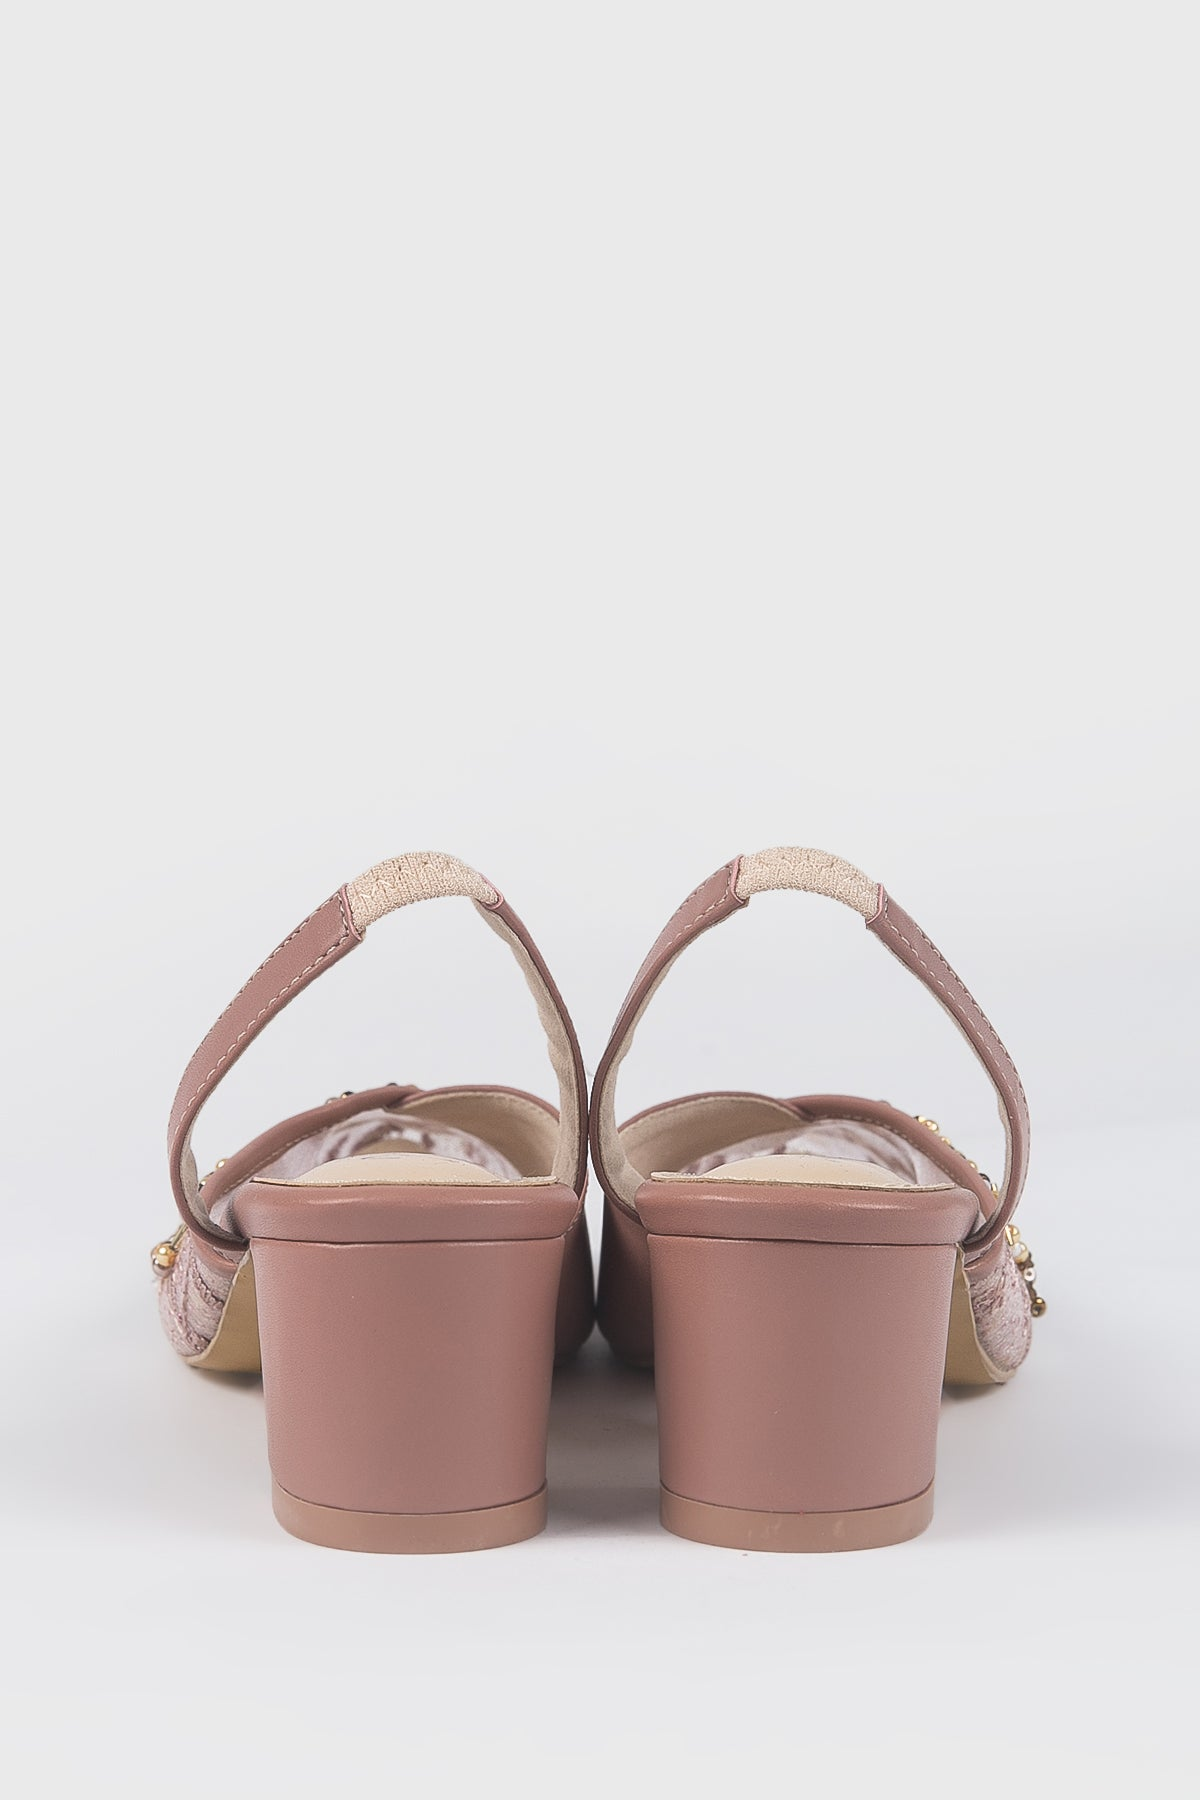 Moments Shoes in Baby Pink